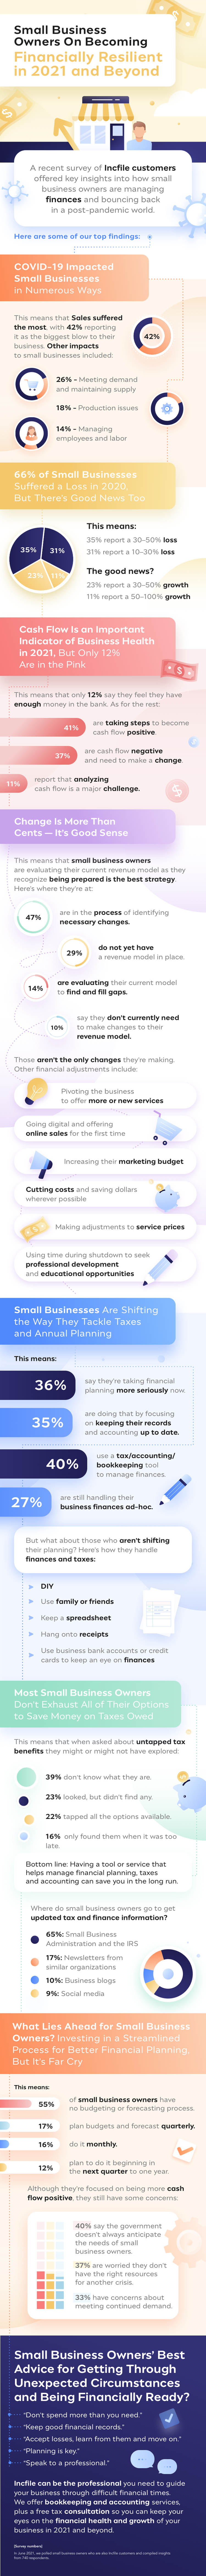 Small Businesses Have Their Sights Set on Financial Recovery